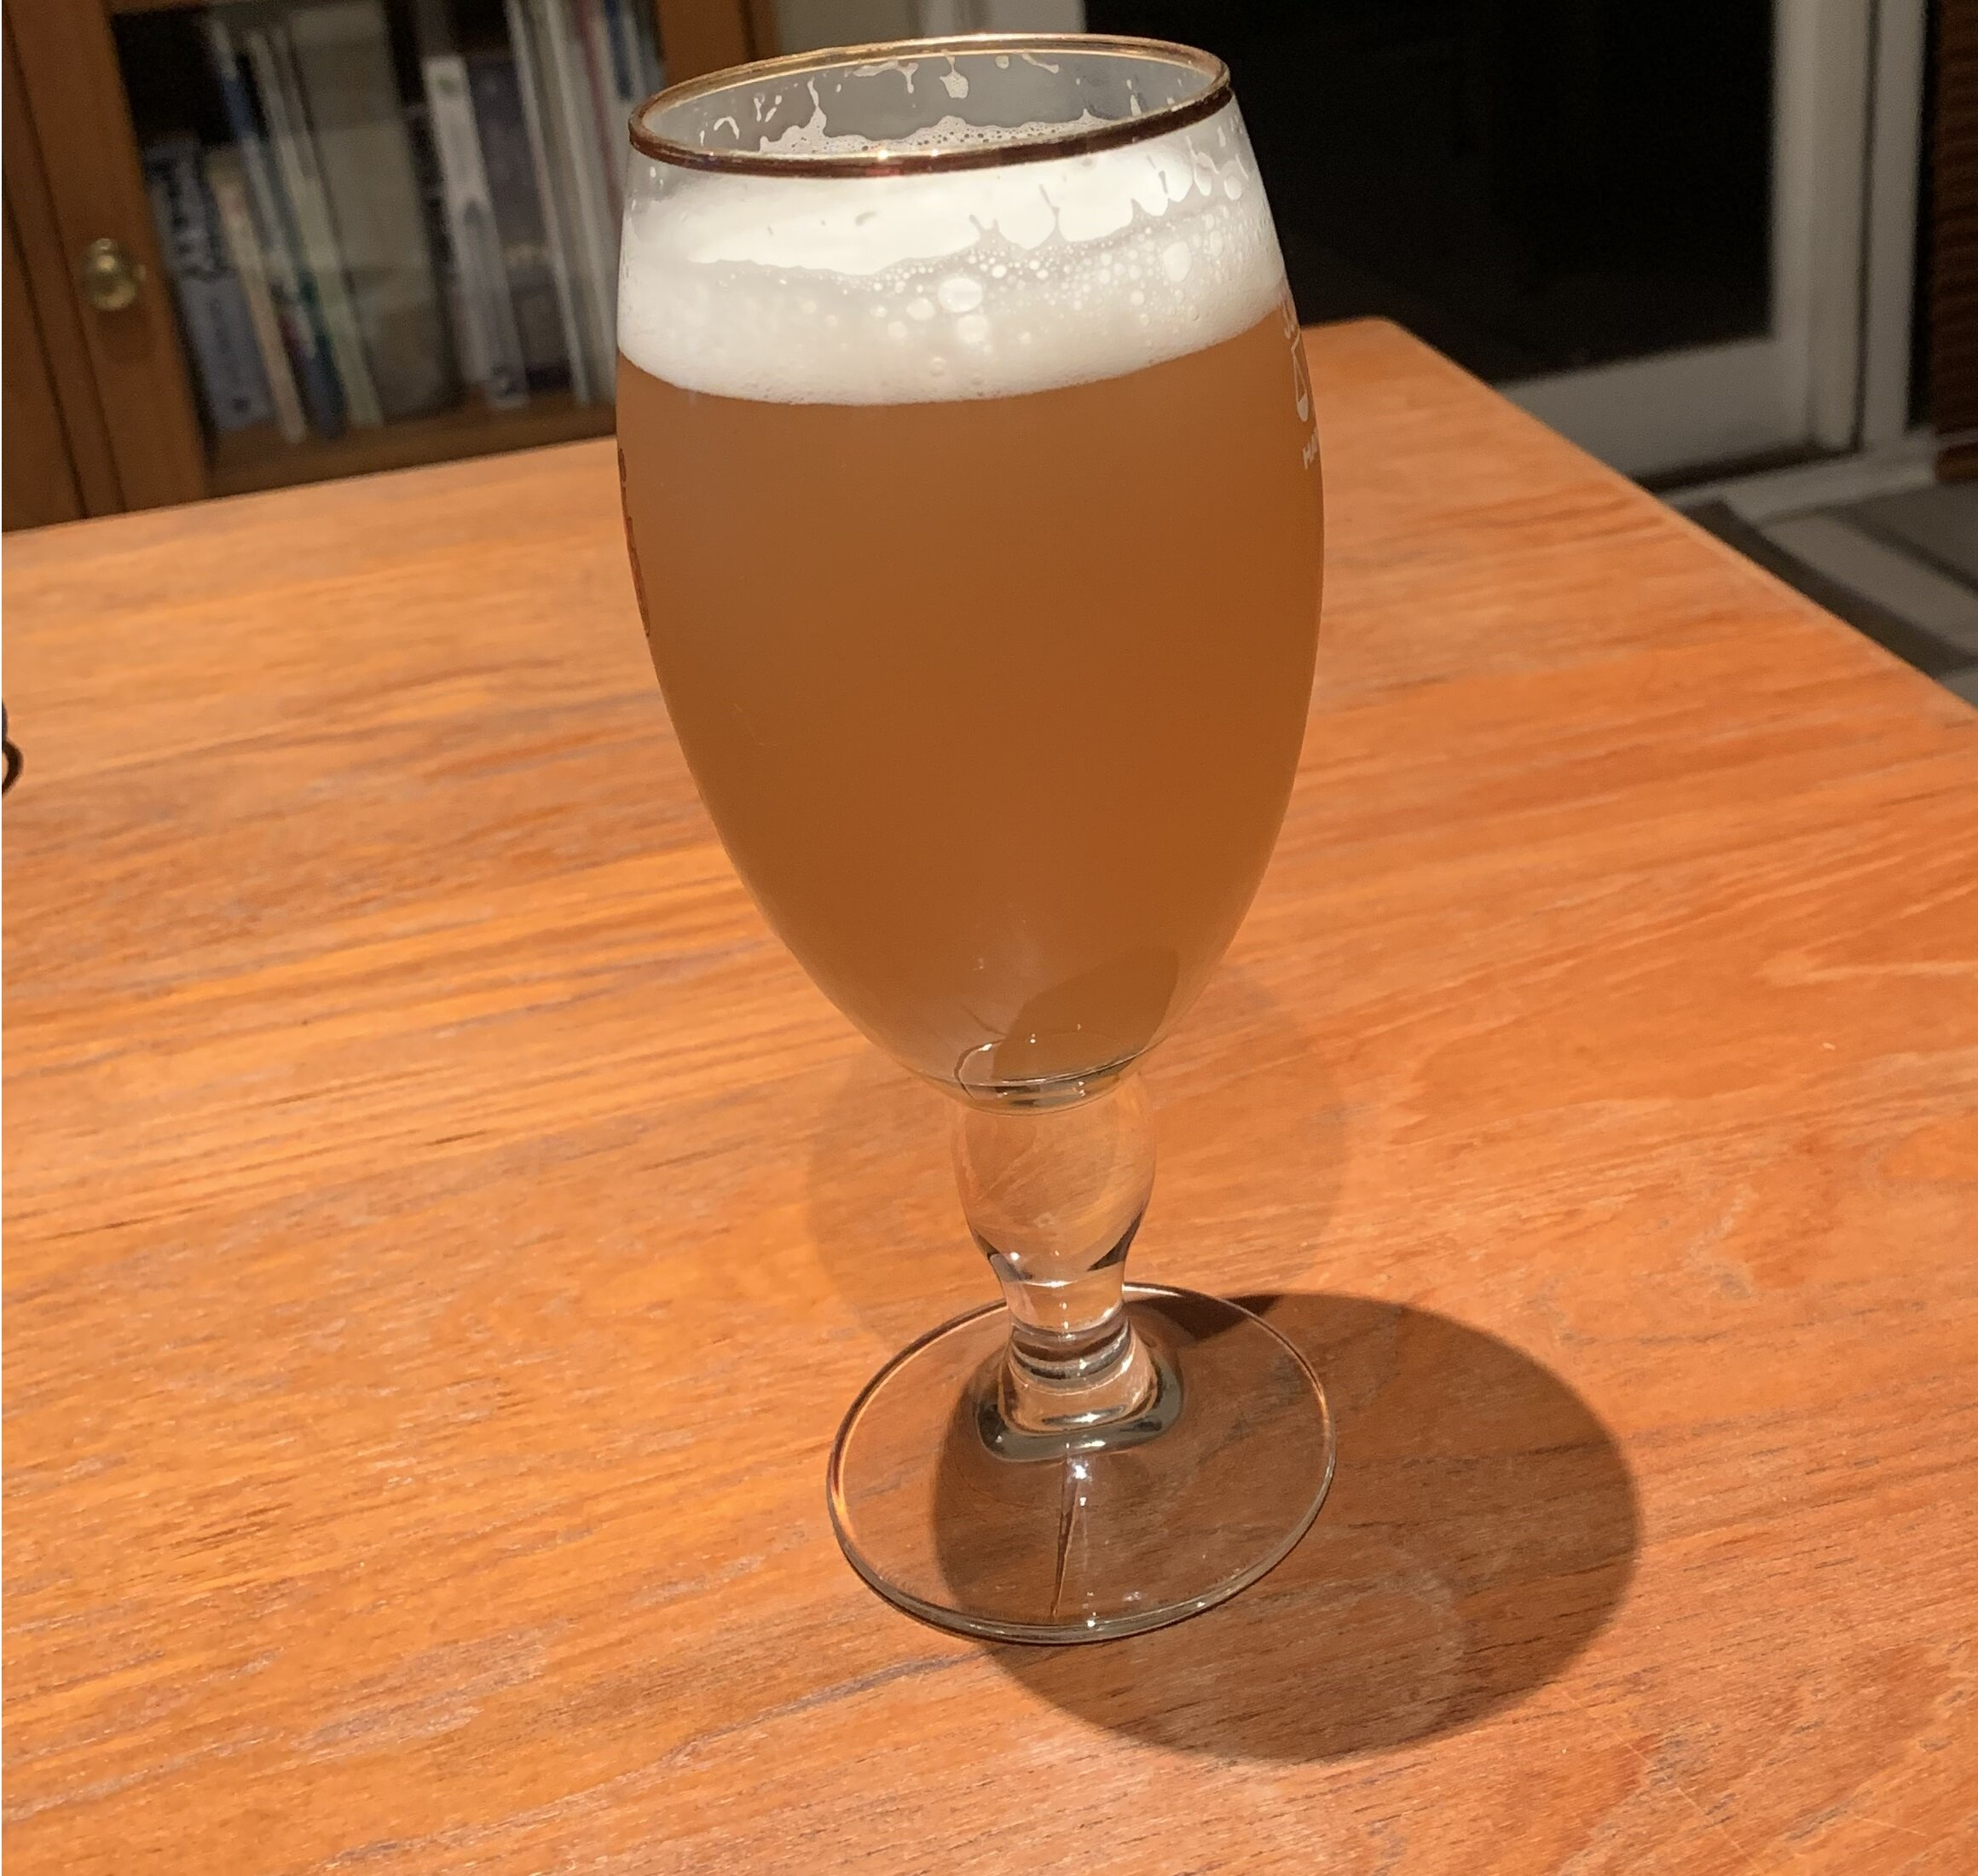 The final product - Our take on a Spring beer